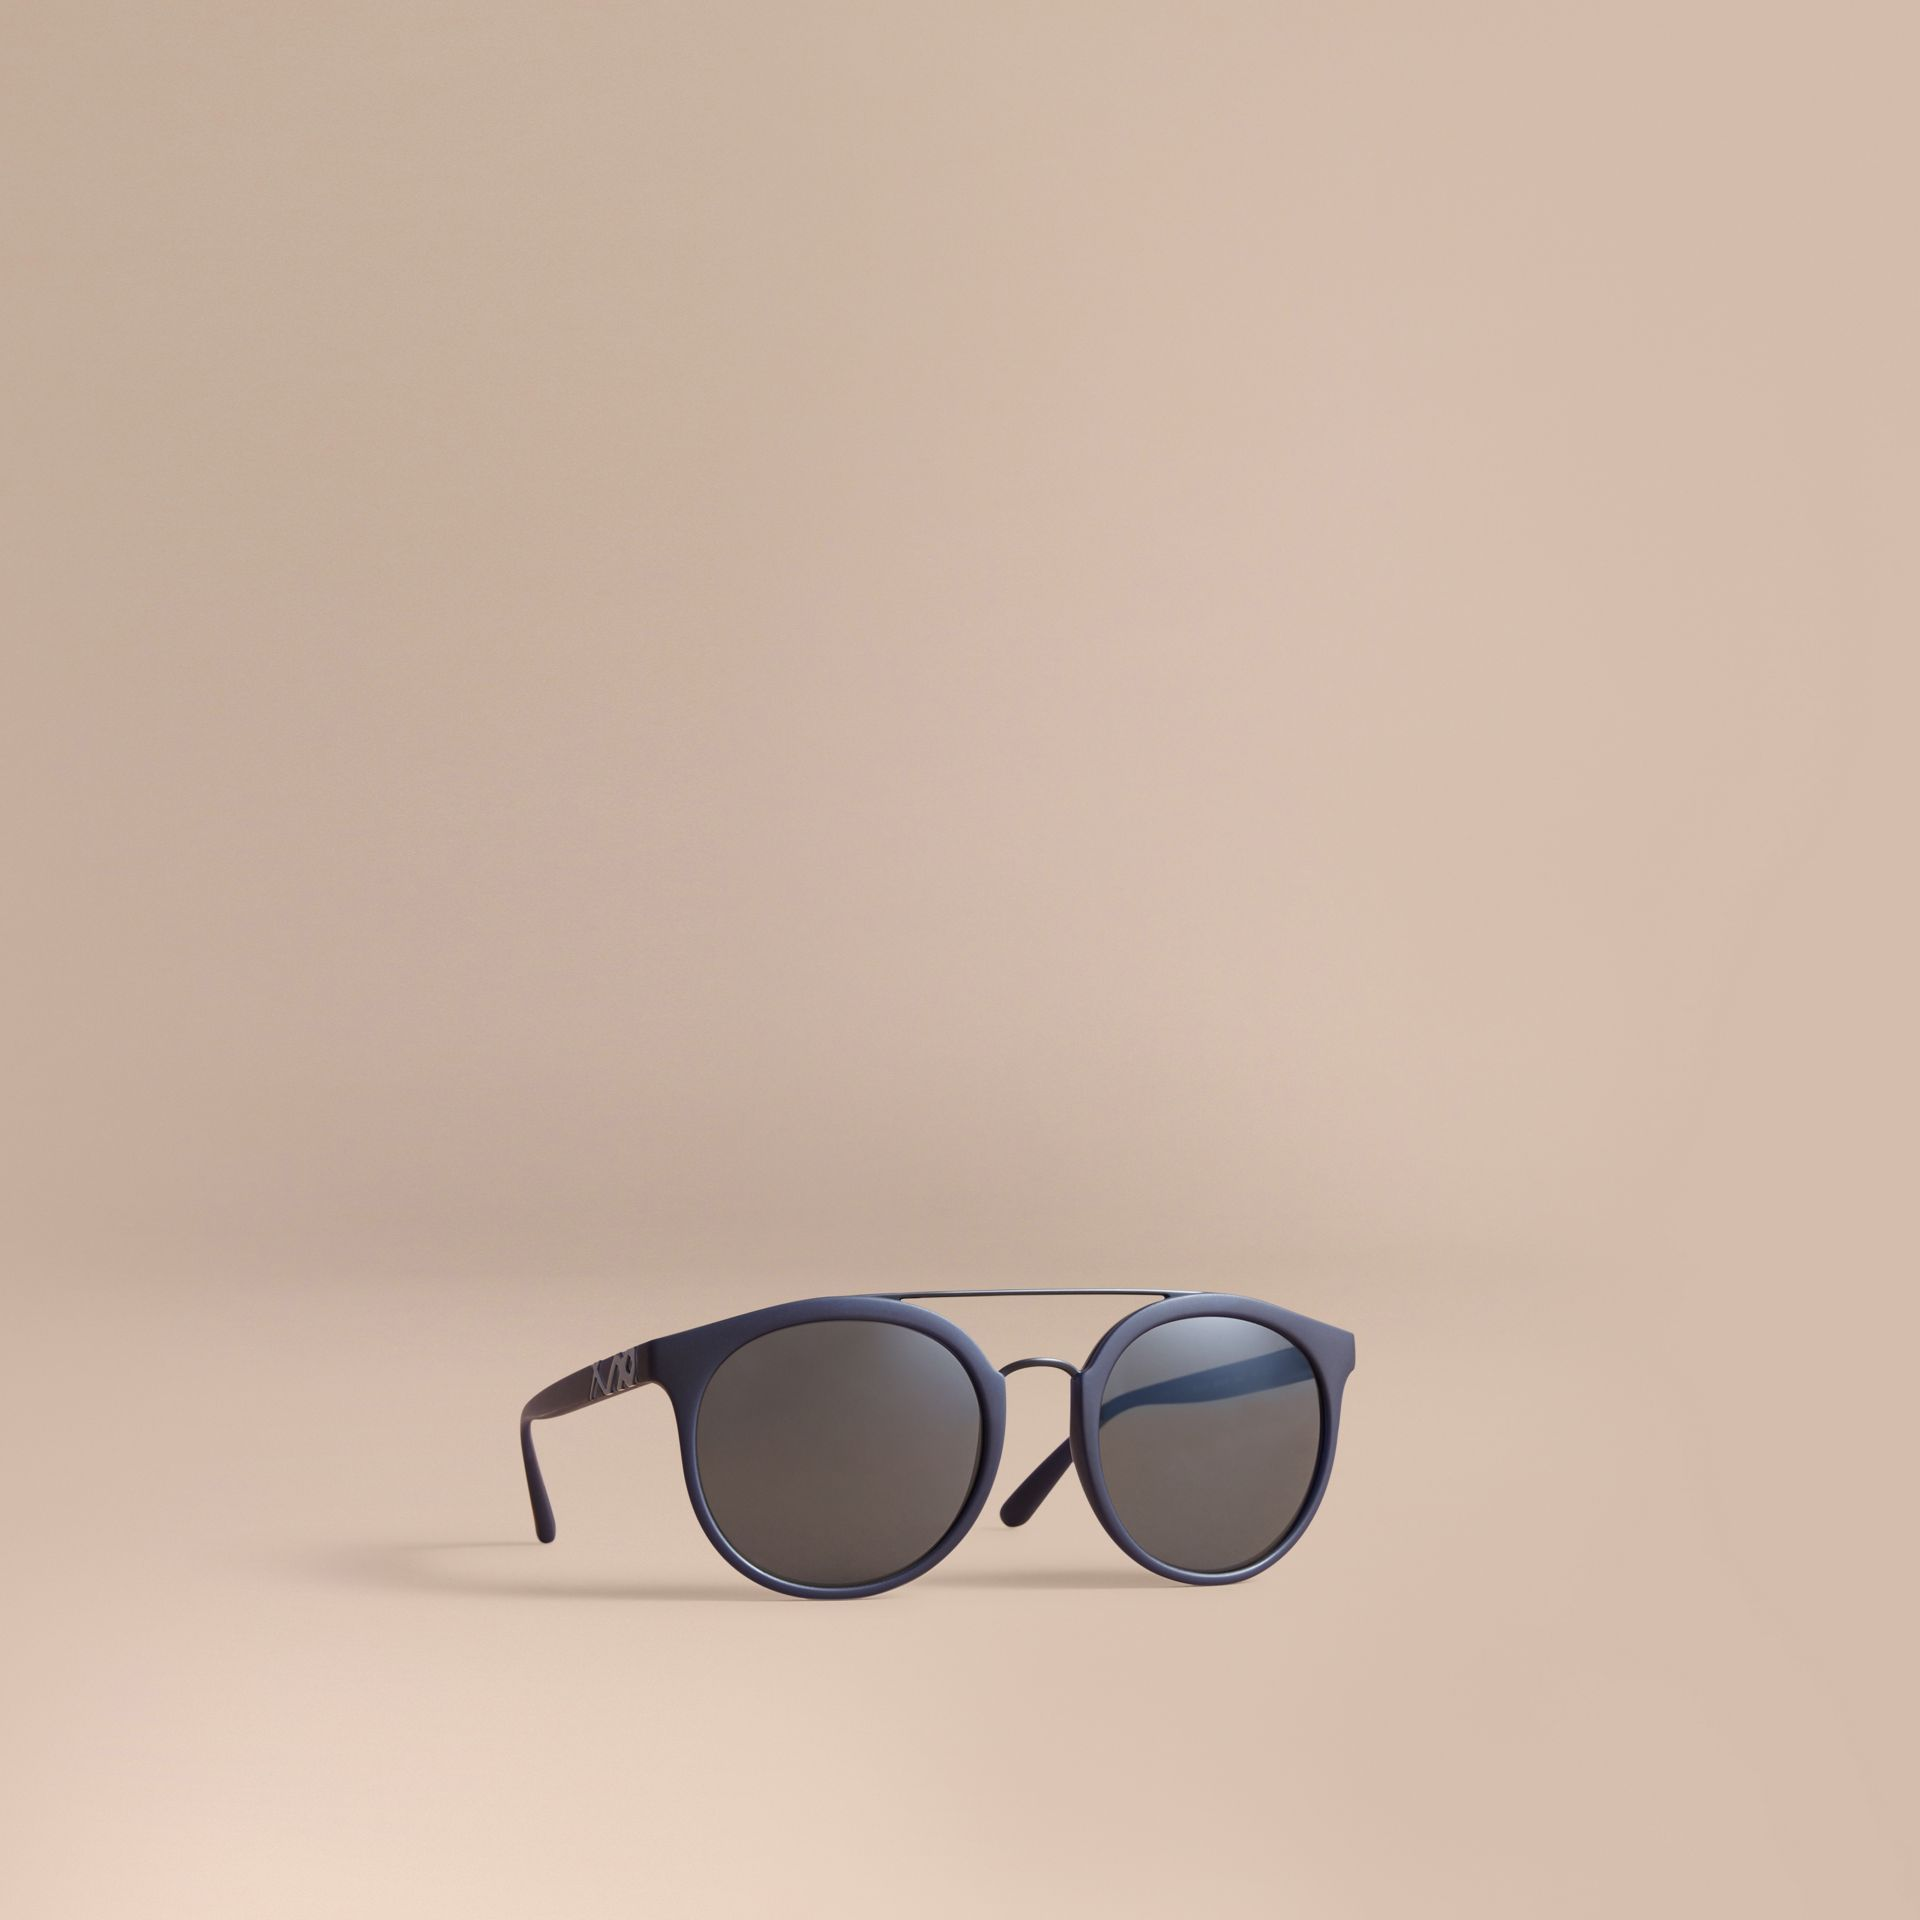 Top Bar Square Frame Sunglasses in Navy - Men | Burberry United Kingdom - gallery image 0